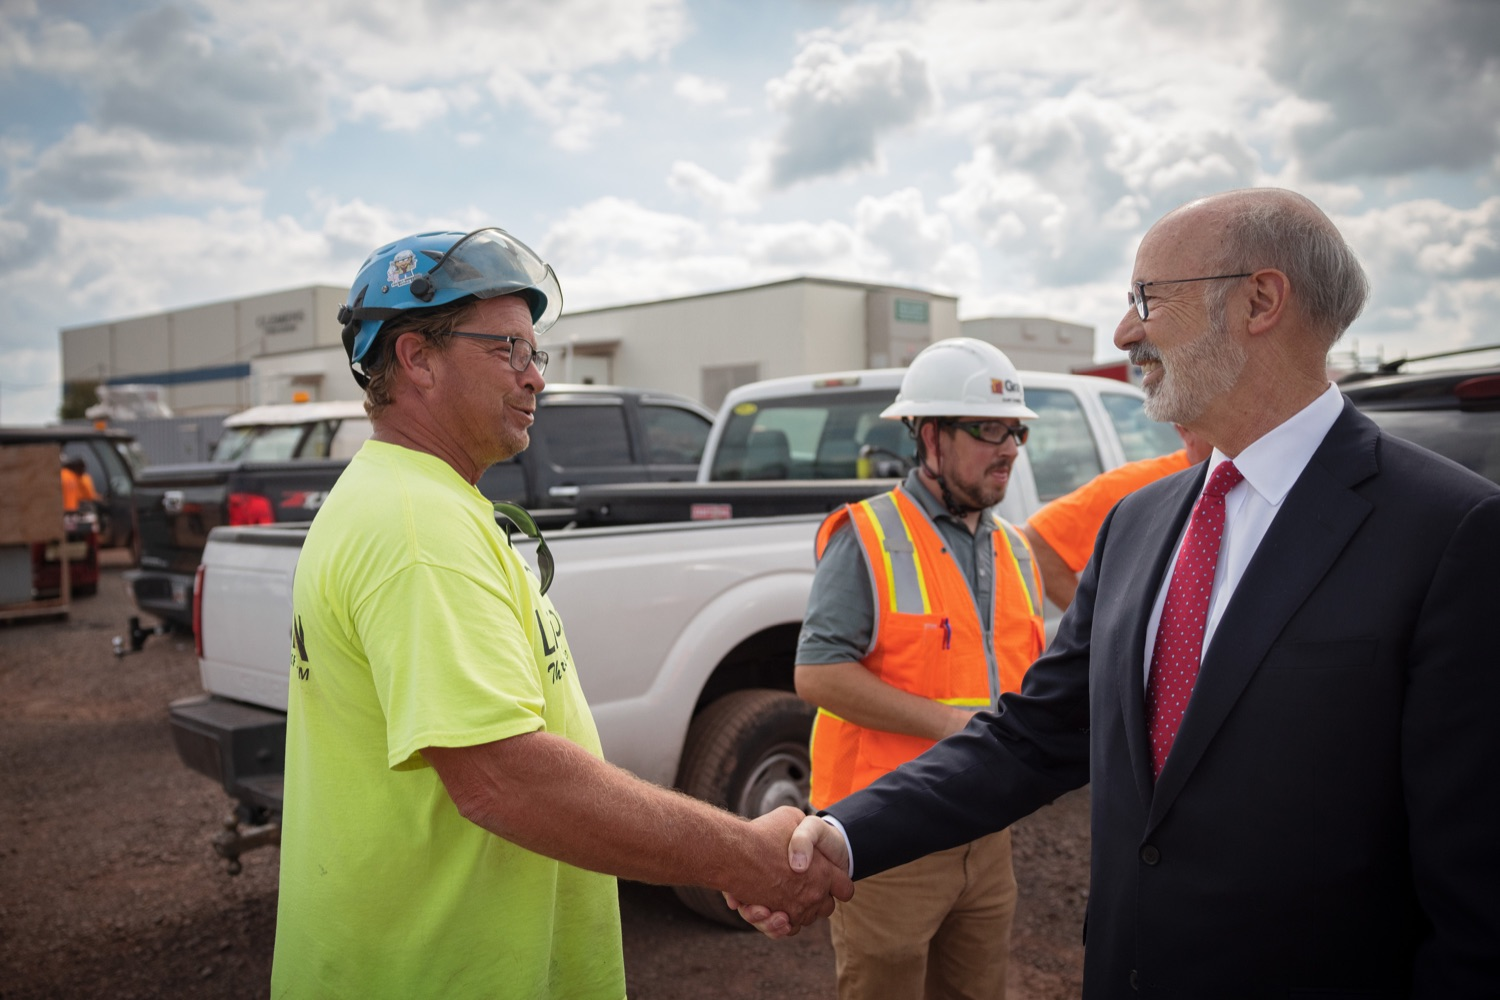 """<a href=""""https://filesource.wostreaming.net/commonwealthofpa/photo/20126_gov_economicDevelopment_dz_023.jpg"""" target=""""_blank"""">⇣Download Photo<br></a>Pennsylvania Governor Tom Wolf greeting construction workers as he tours the site.  Governor Tom Wolf joined Clemens Food Group leaders, Agriculture Secretary Russell Redding, Sen. Maria Collett, Rep. Steve Malagari and members of the Governors Action Team today to tour the construction of the companys new facility in Montgomery County. The Wolf Administration supported the project which will expand the business operations and create new jobs in the region. Hatfield, PA   October 8, 2021"""